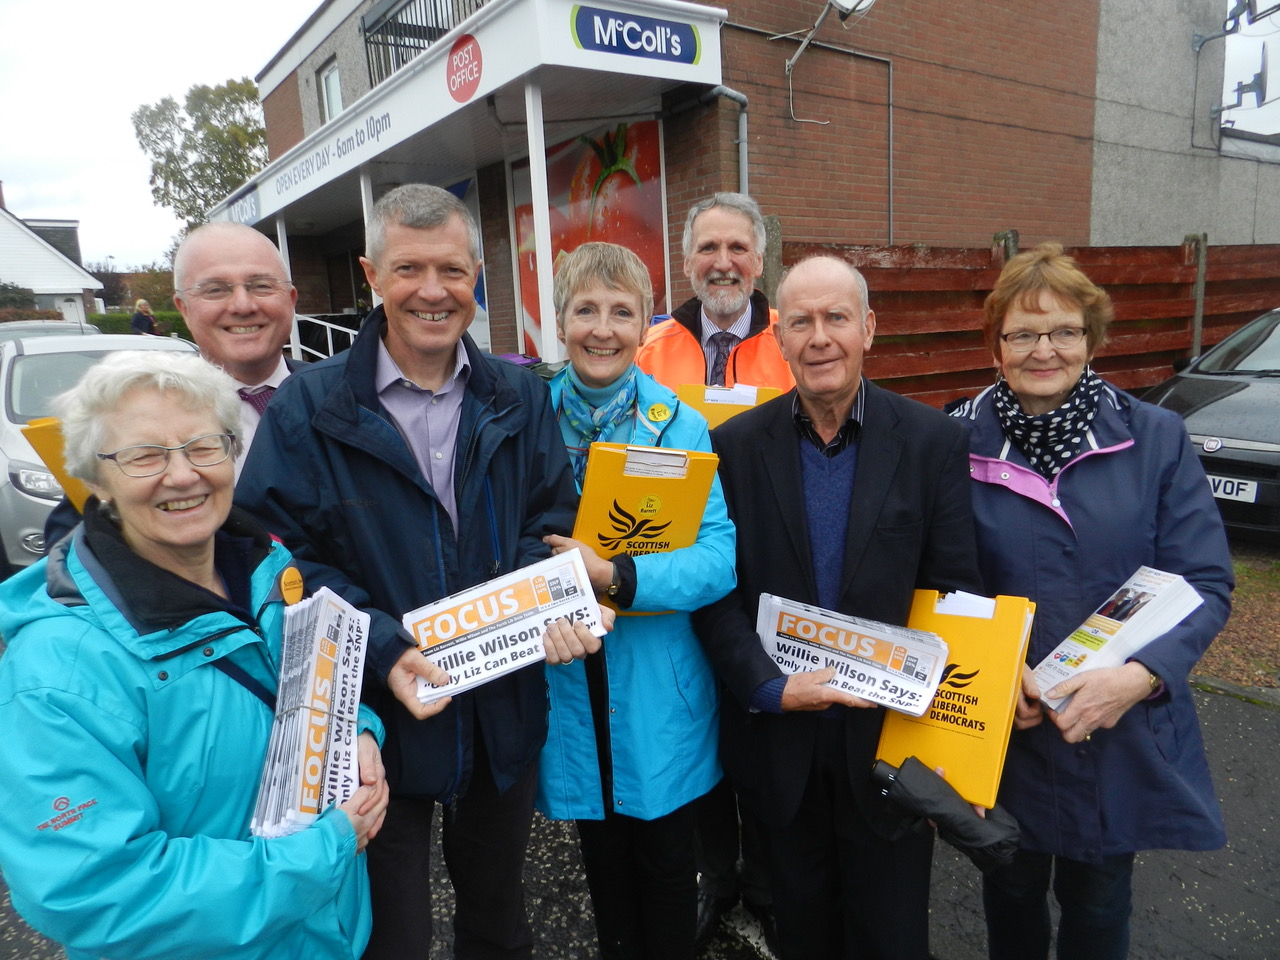 Perth City South By-election Lib Dems fighting to win